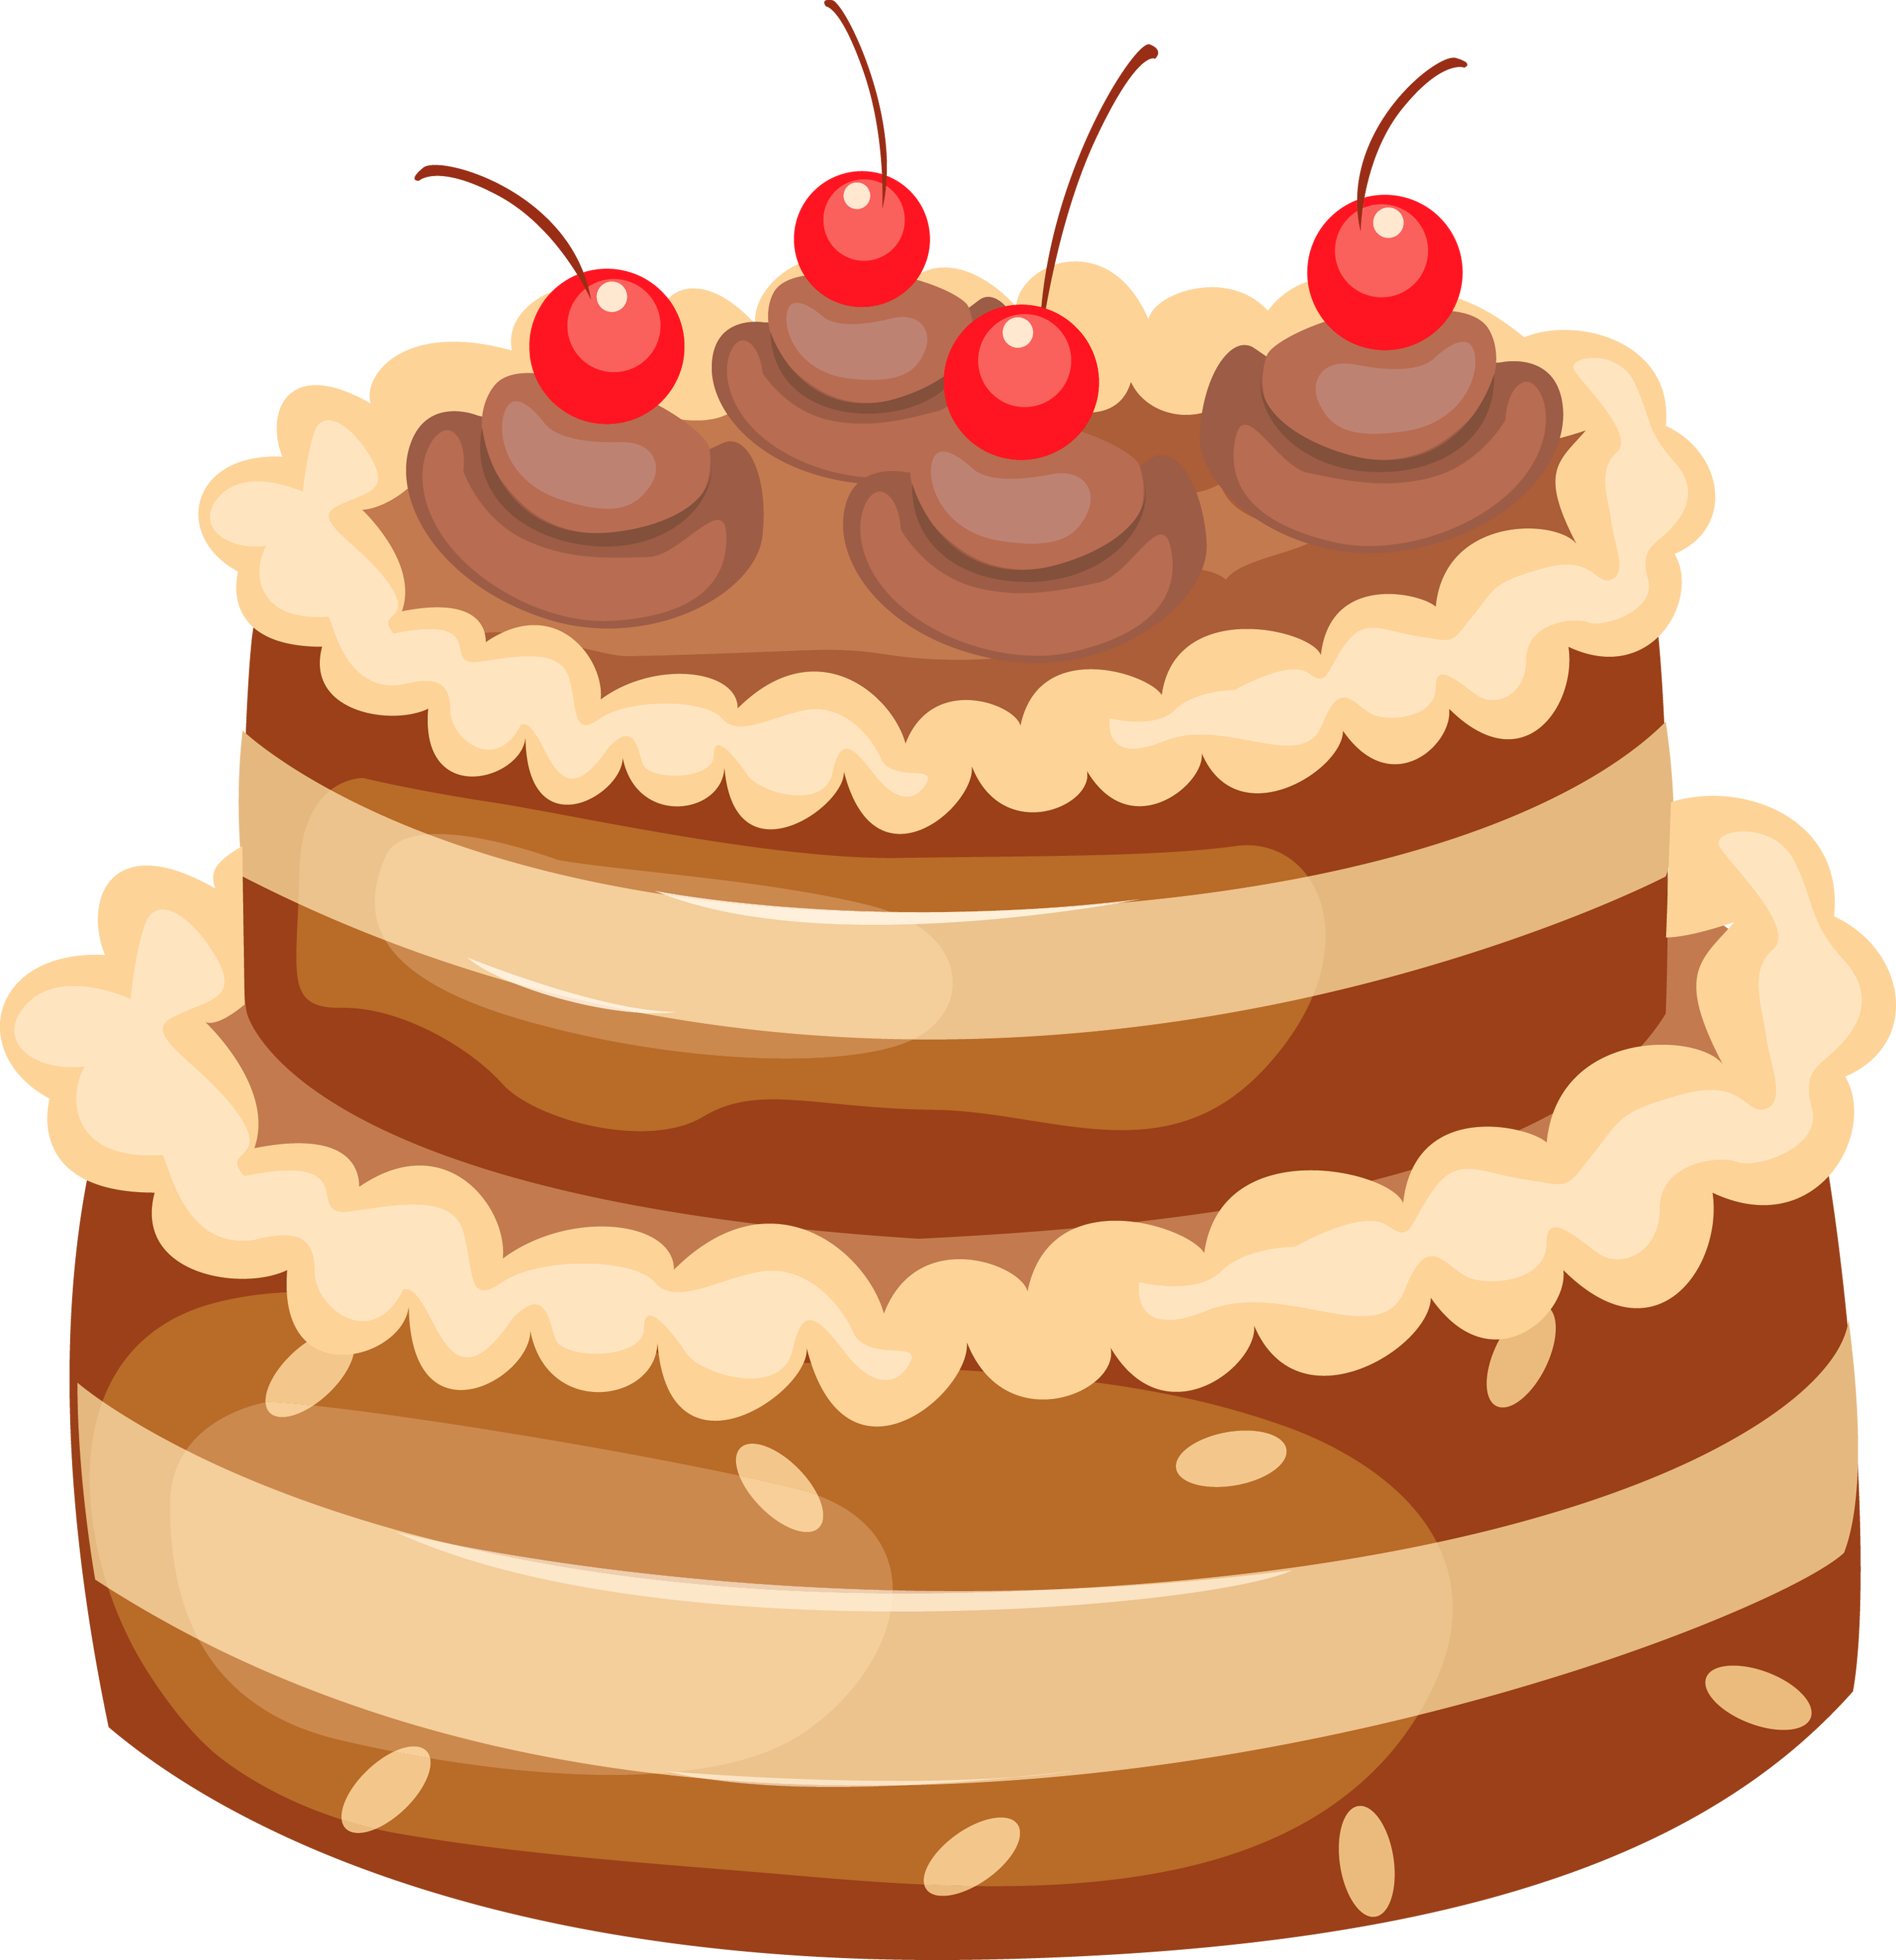 Free Sheet Cake Clipart - Clipart Kid-Free Sheet Cake Clipart - Clipart Kid-6